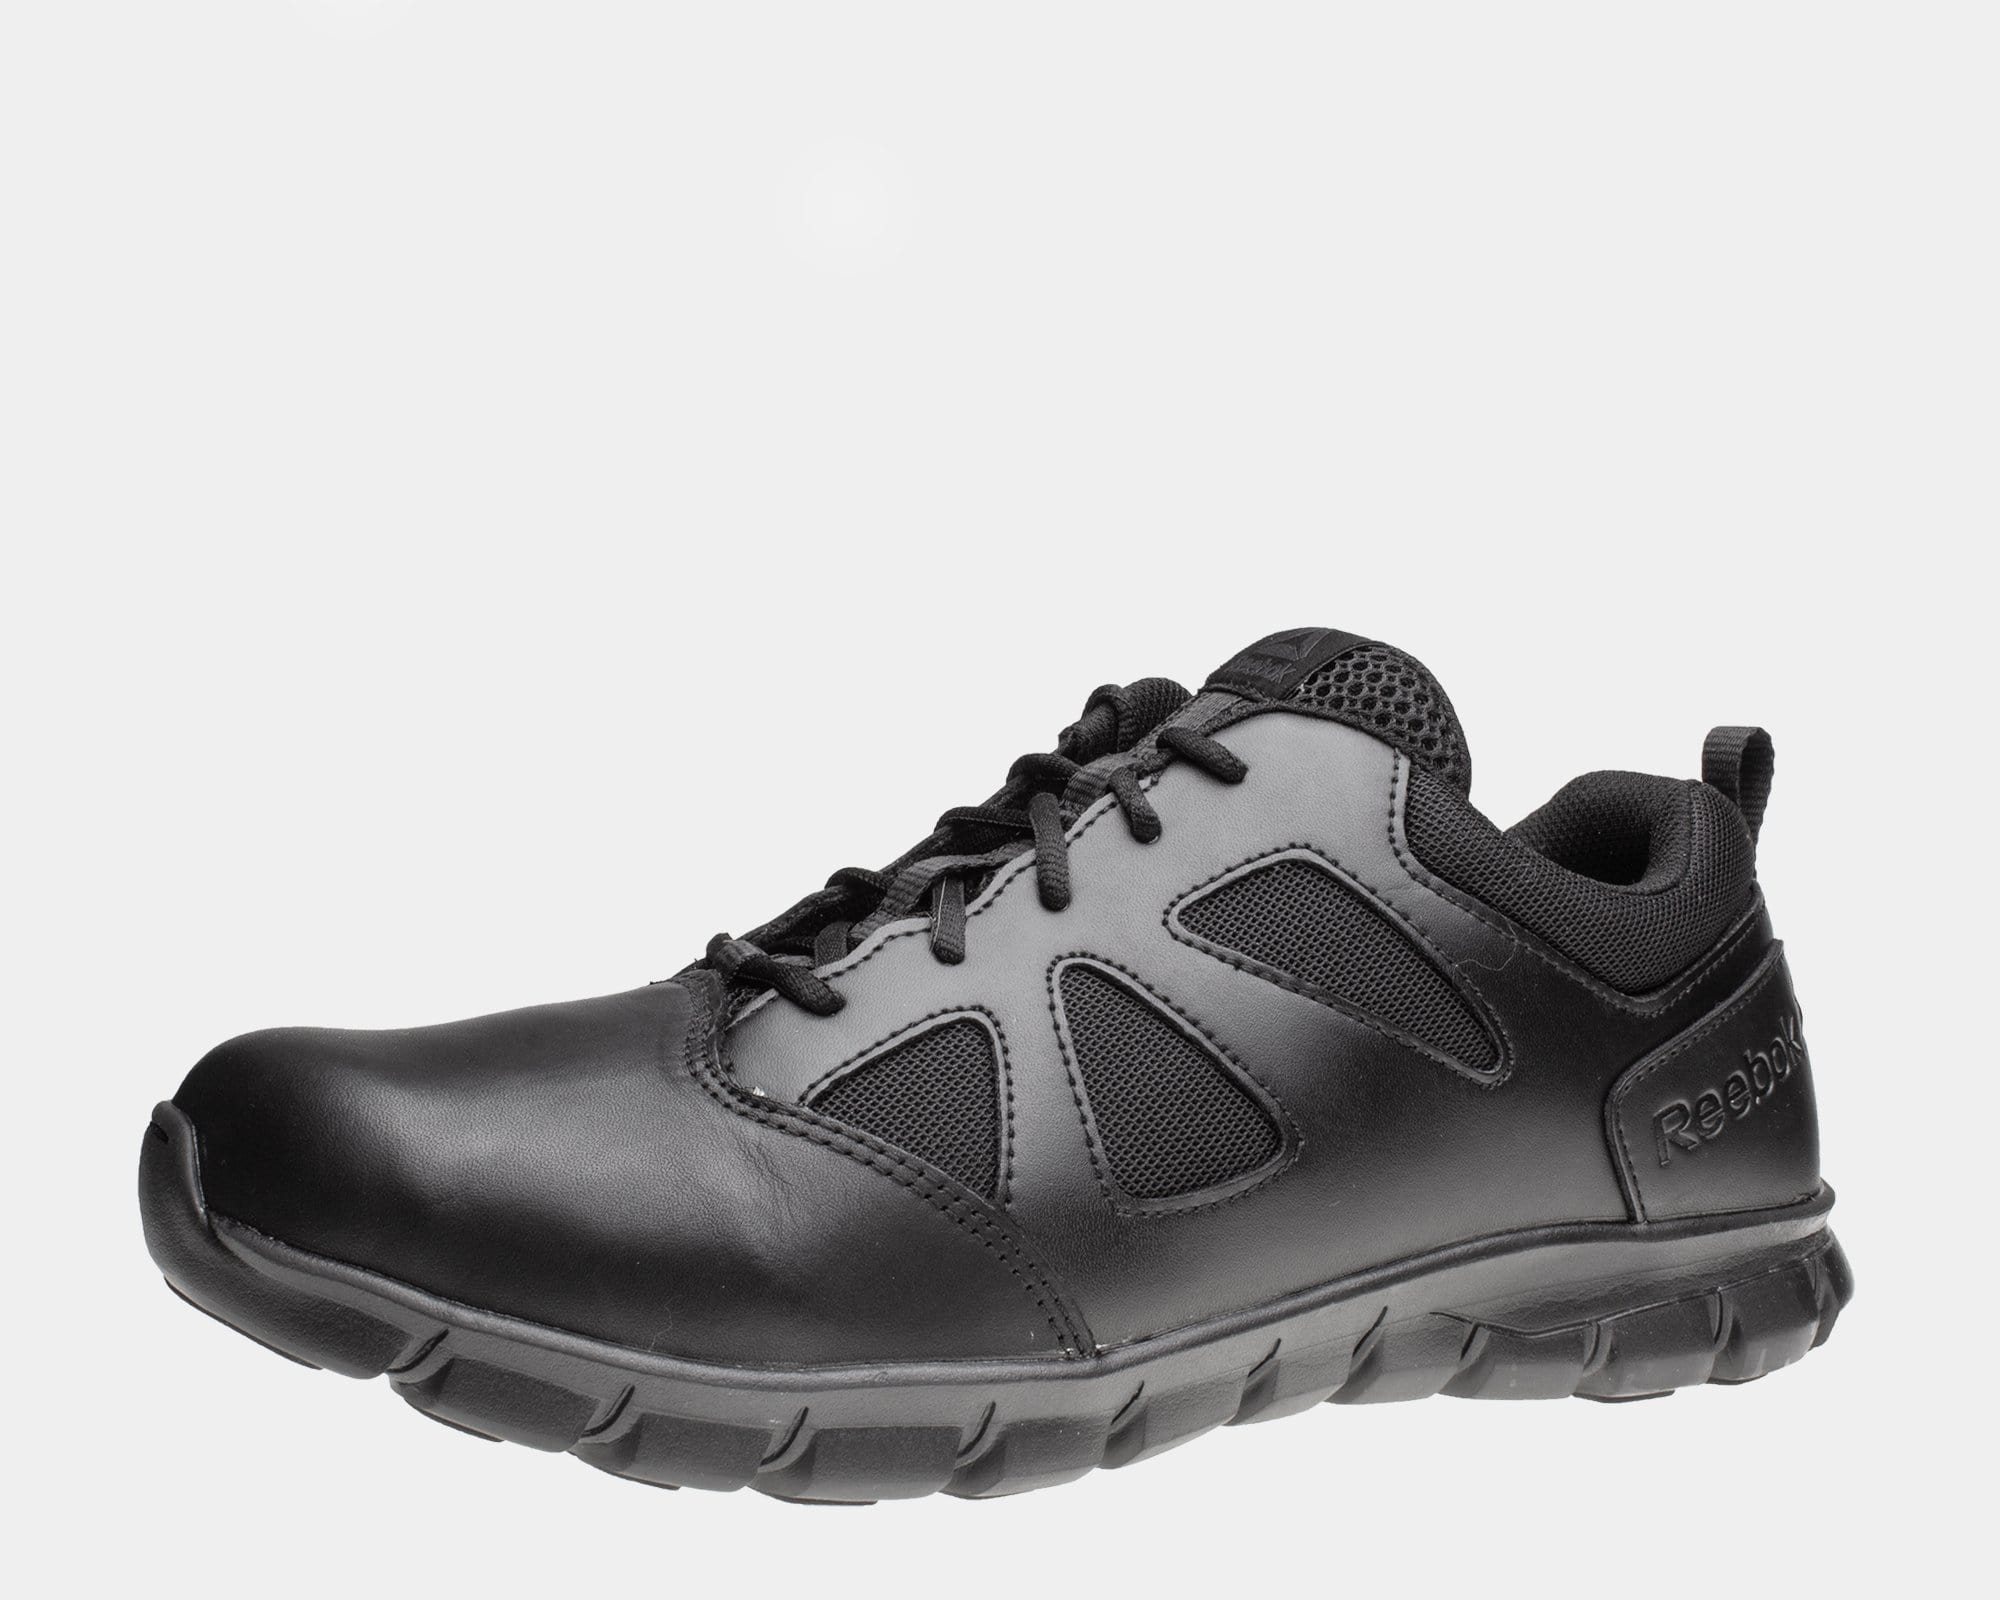 8101425107f60e Reebok Work Sublite Cushion Tactical Shoes - Mens Large Sizes